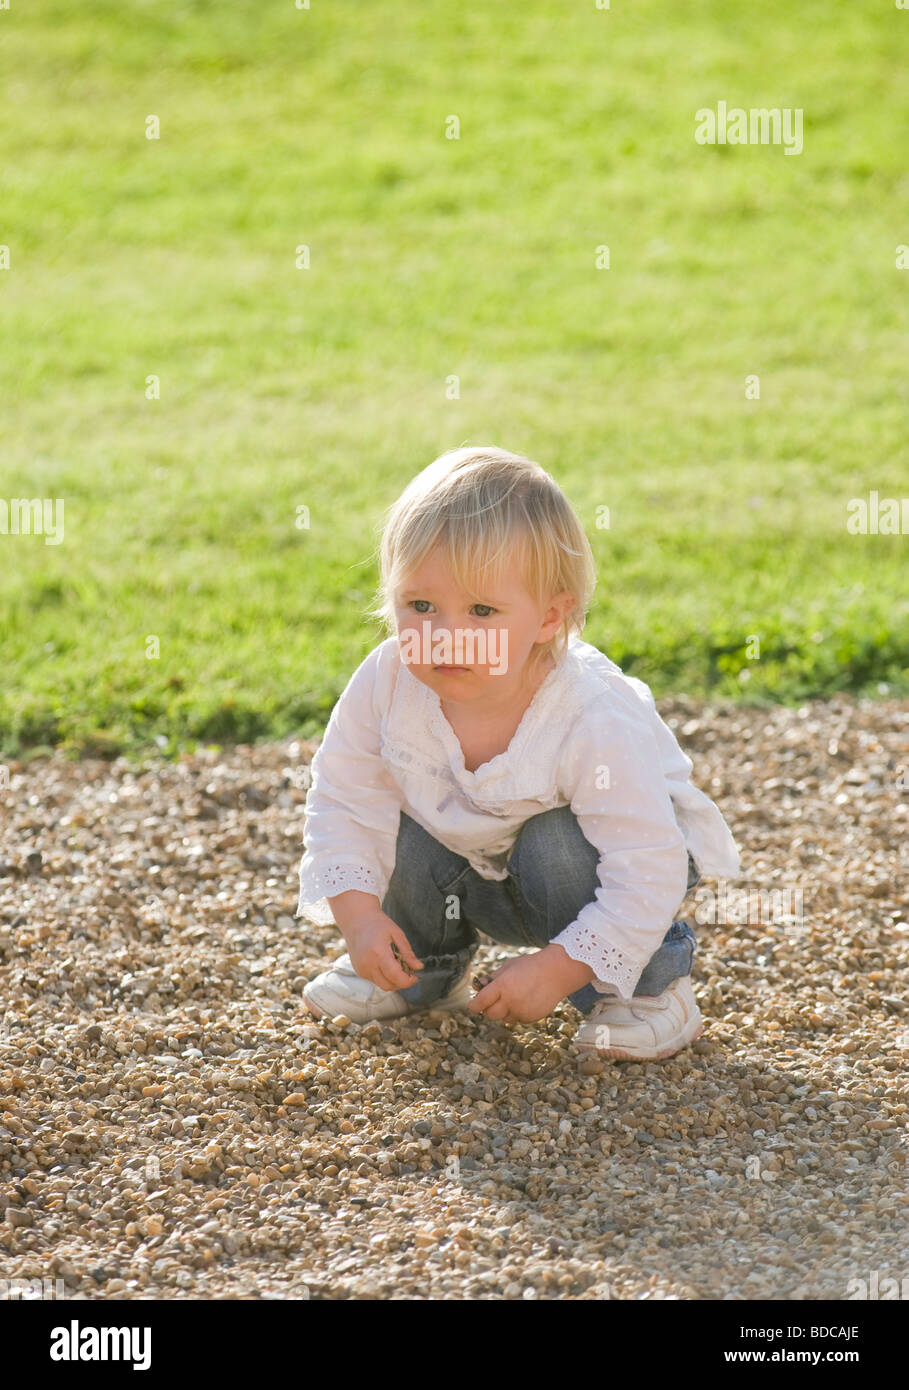 Baby girl 21 months old, on gravel path, - Stock Image